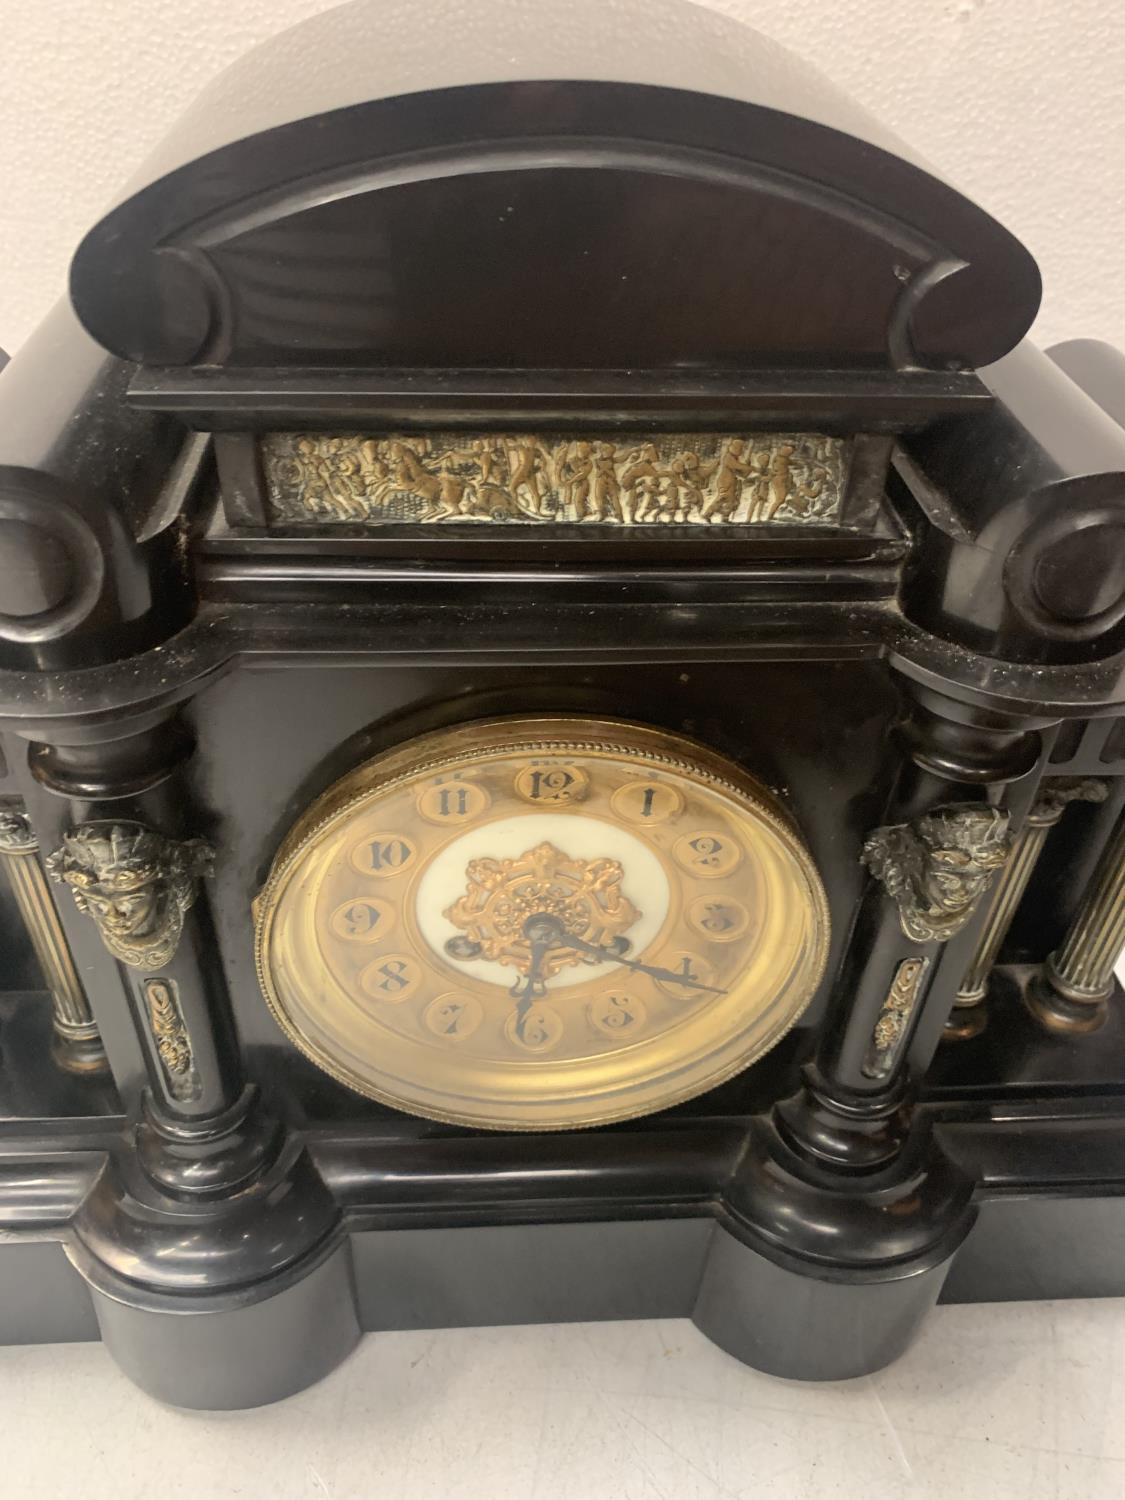 A HEAVY SLATE LOWE & SONS CHESTER MANTEL CLOCK WITH 13CM DIAL WITH ARABIC NUMERALS, CASE FLANKED - Image 7 of 7